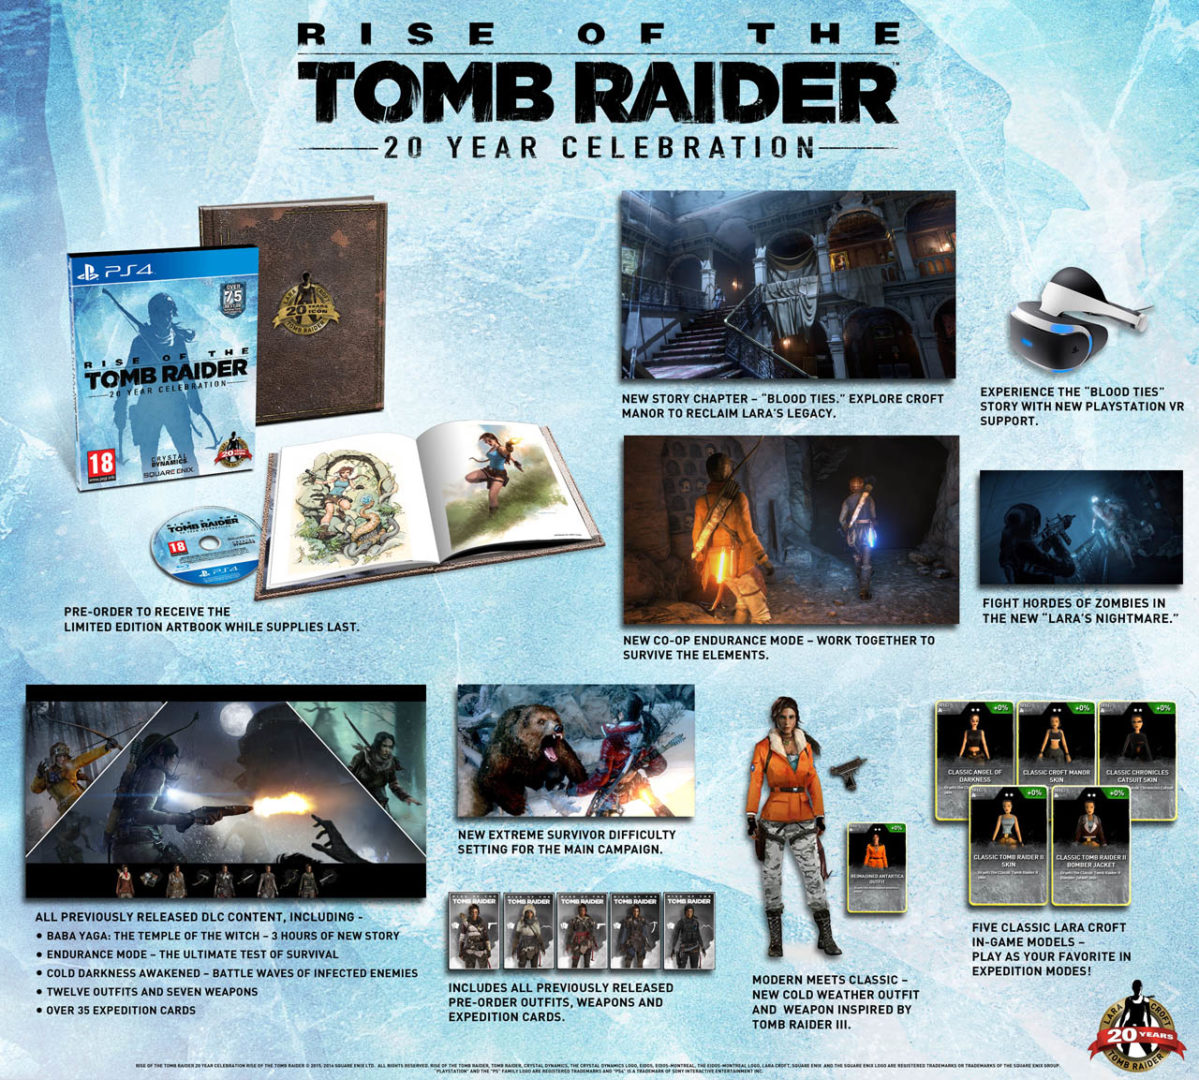 rise-of-the-tomb-raider-20-year-celebration-03-gamesoul